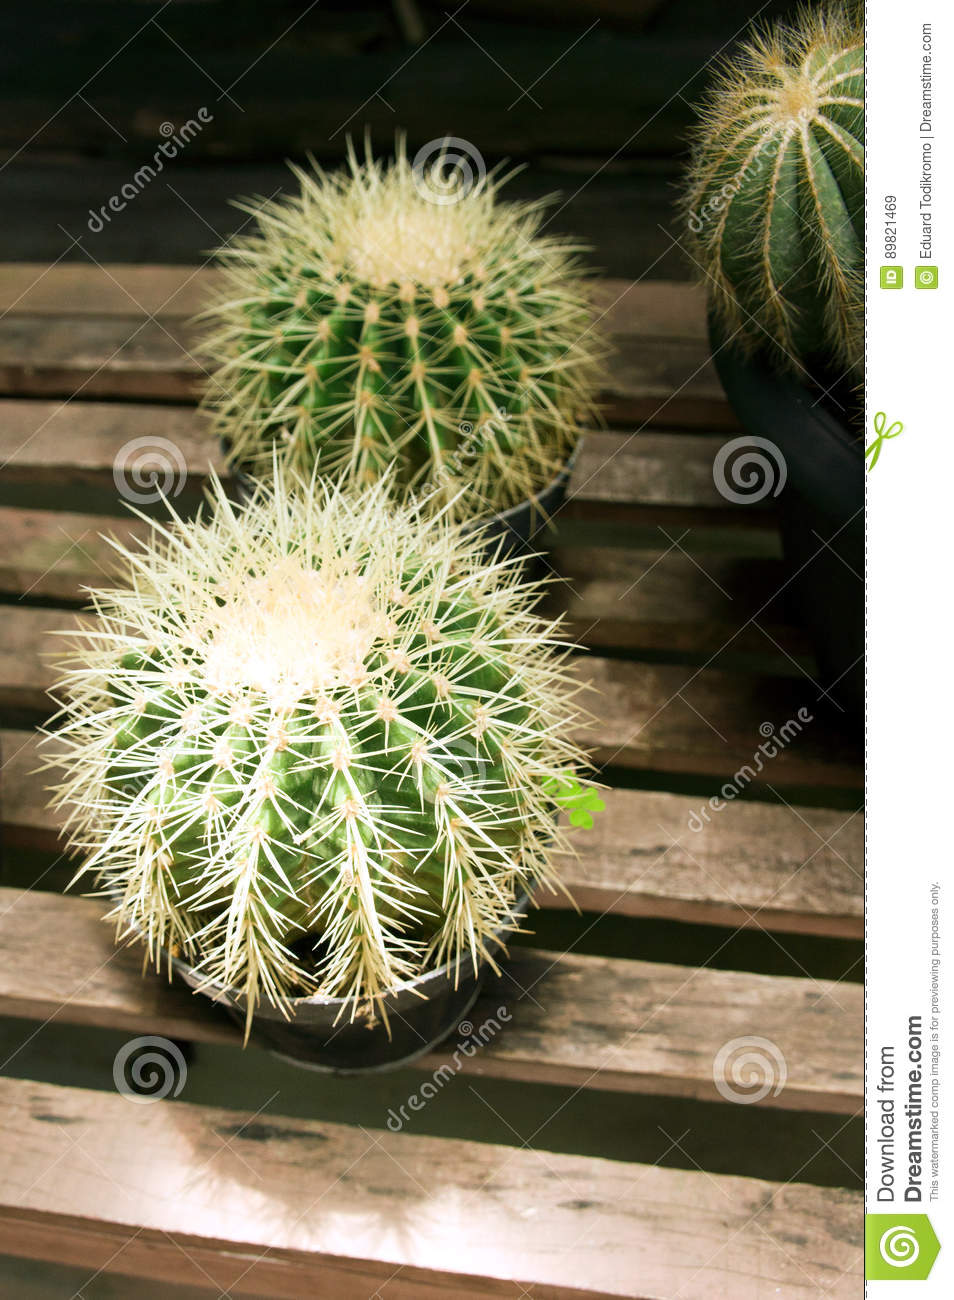 Bench Cactus Decoration Green Round Sitting Small Sphere Spikes Table ...